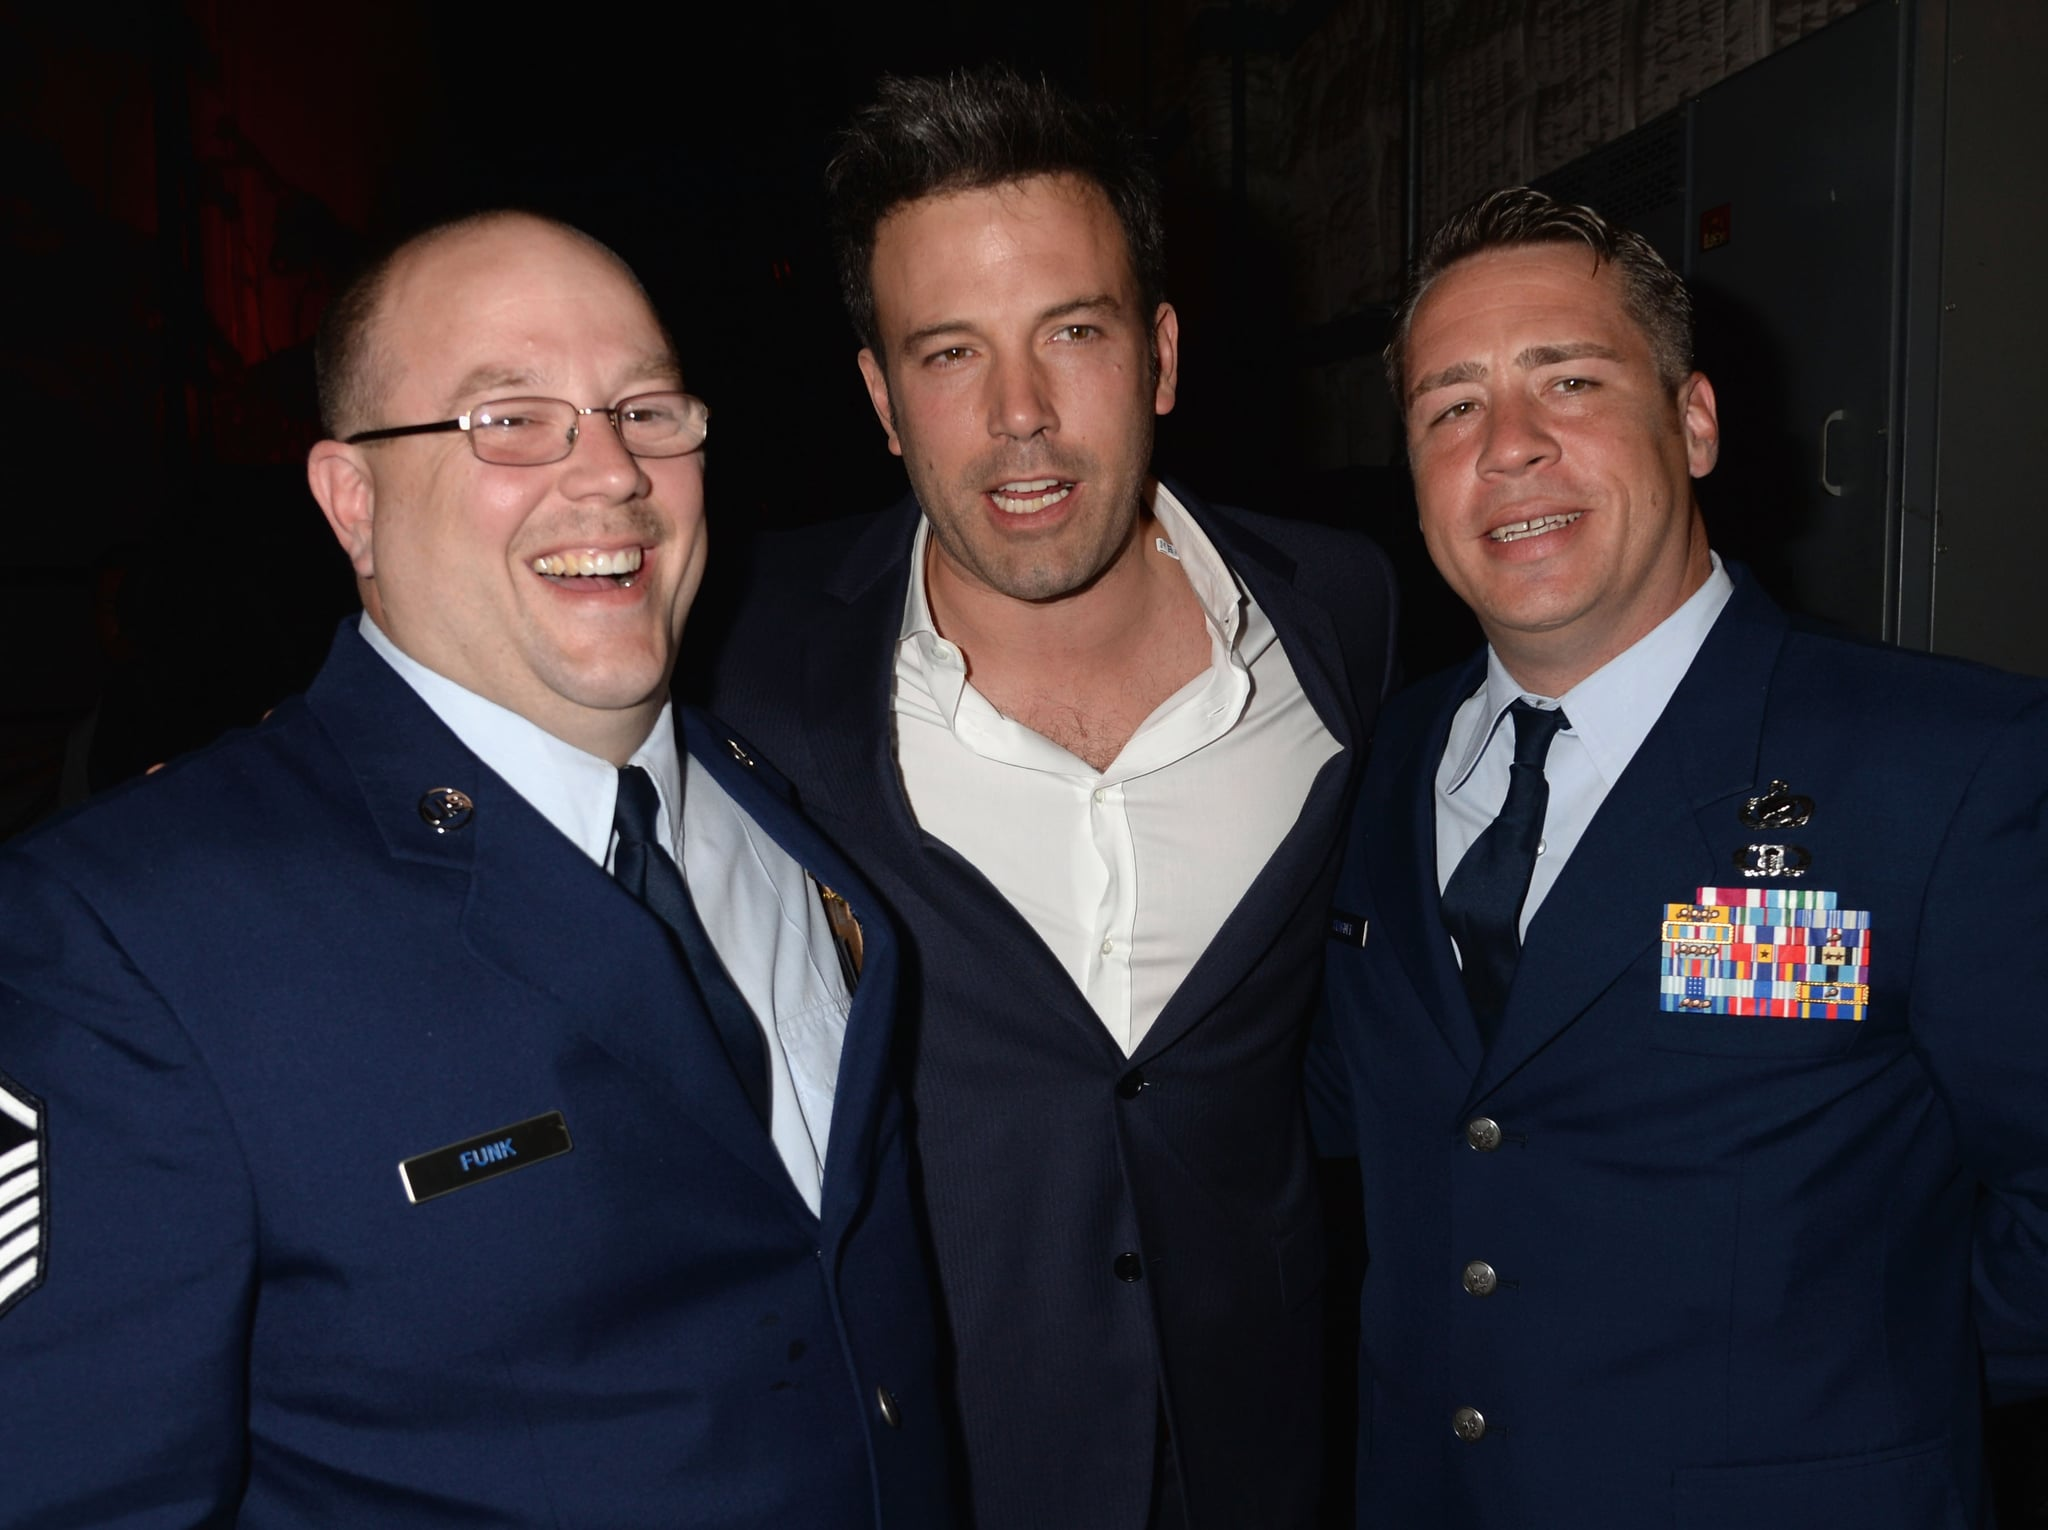 Ben Affleck posed with servicemen backstage.